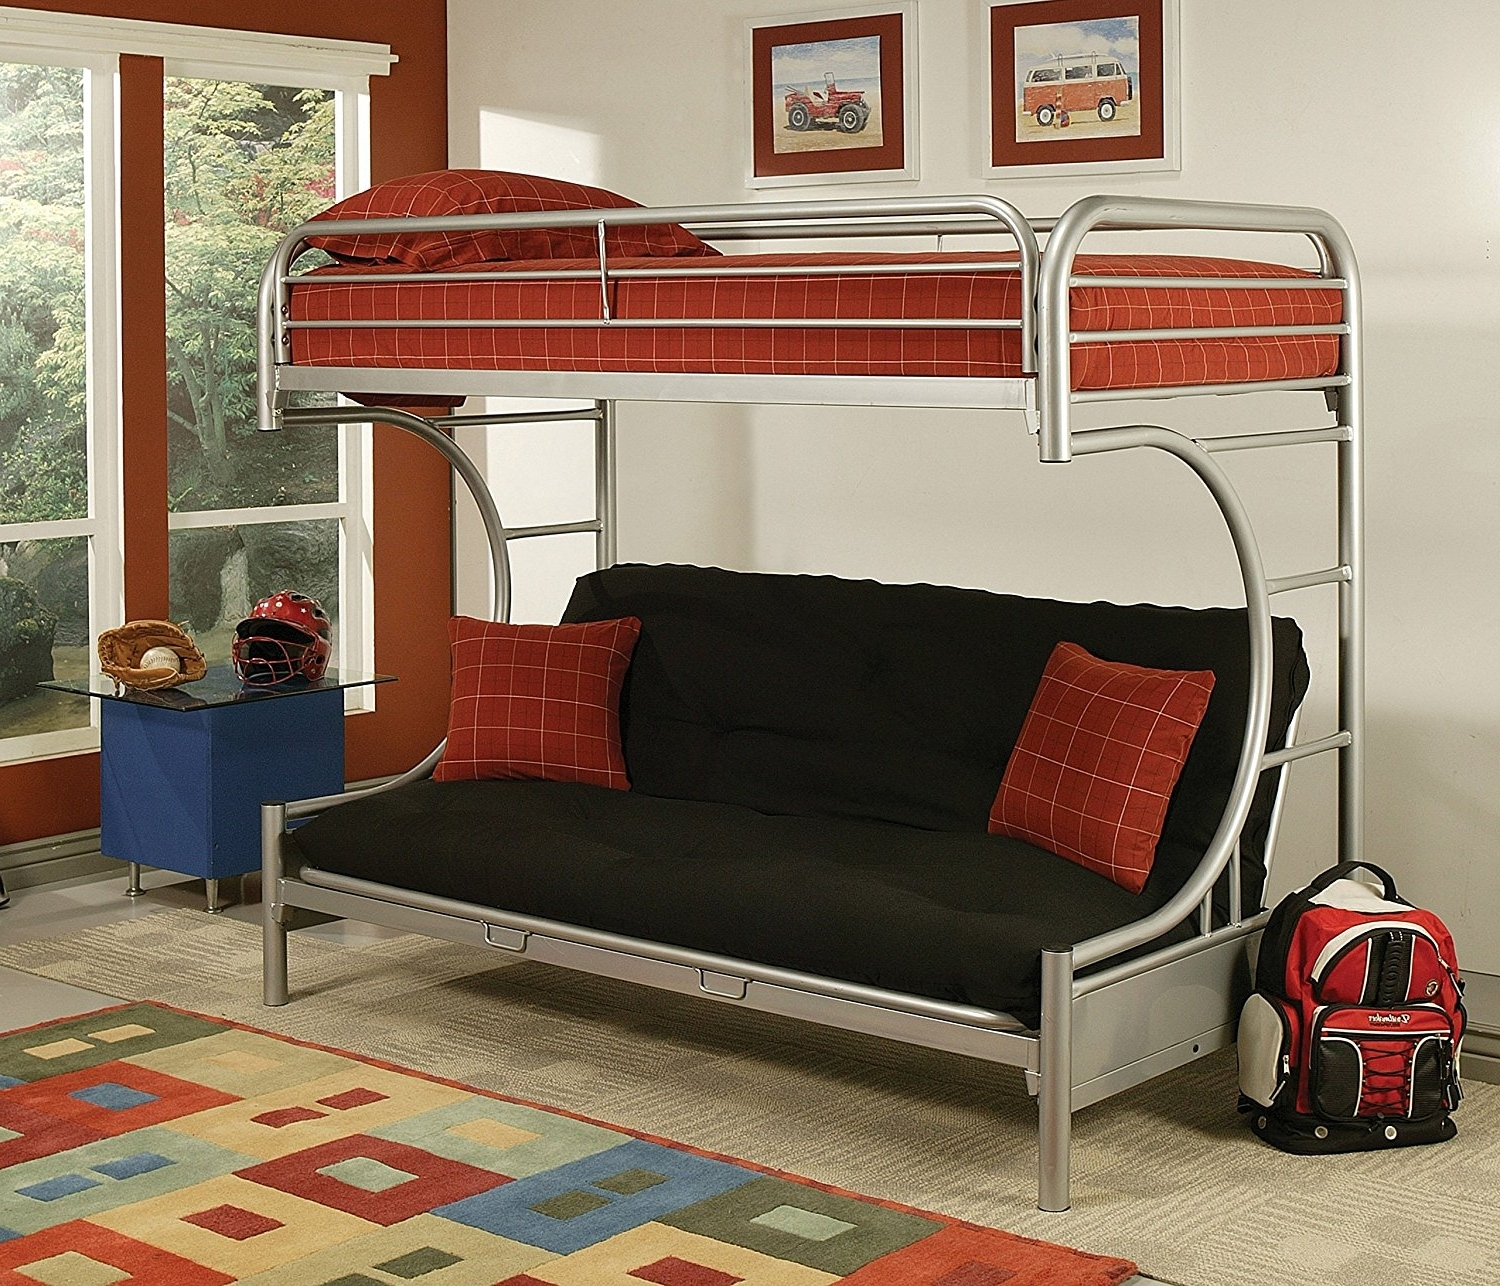 Widely Used Sofa Bunk Beds Regarding Bunk Bed Sofa (View 20 of 20)